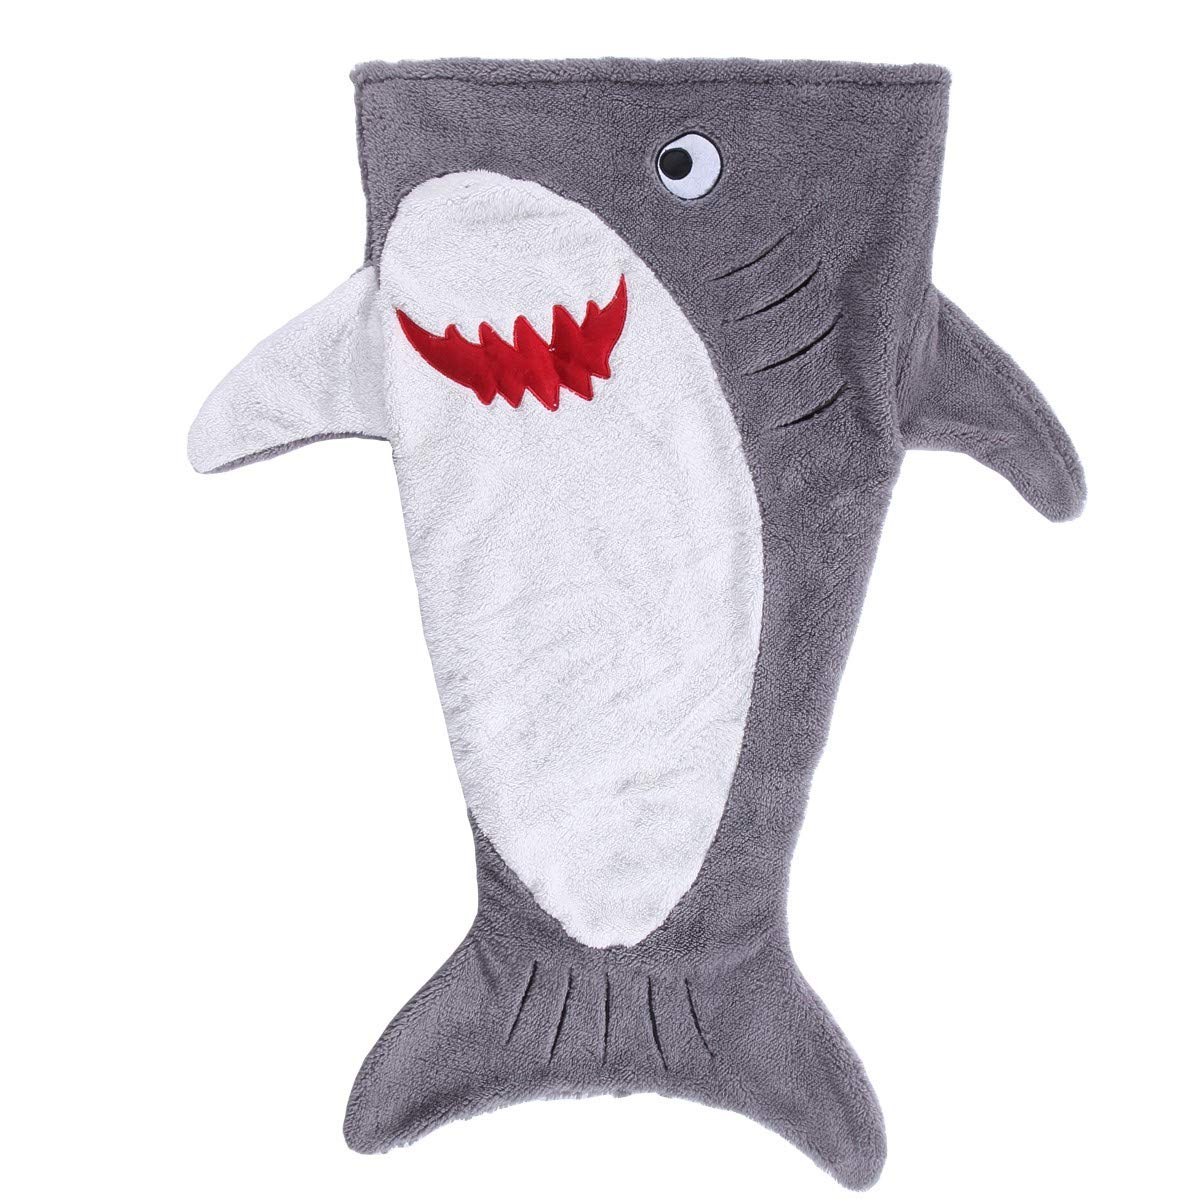 SINOGEM Shark Blanket Toys for Children, Pocket Style Kids Tail Blanket Shark Toy, Plush Animal Sleeping Bag Blanket for Kids (Grey)